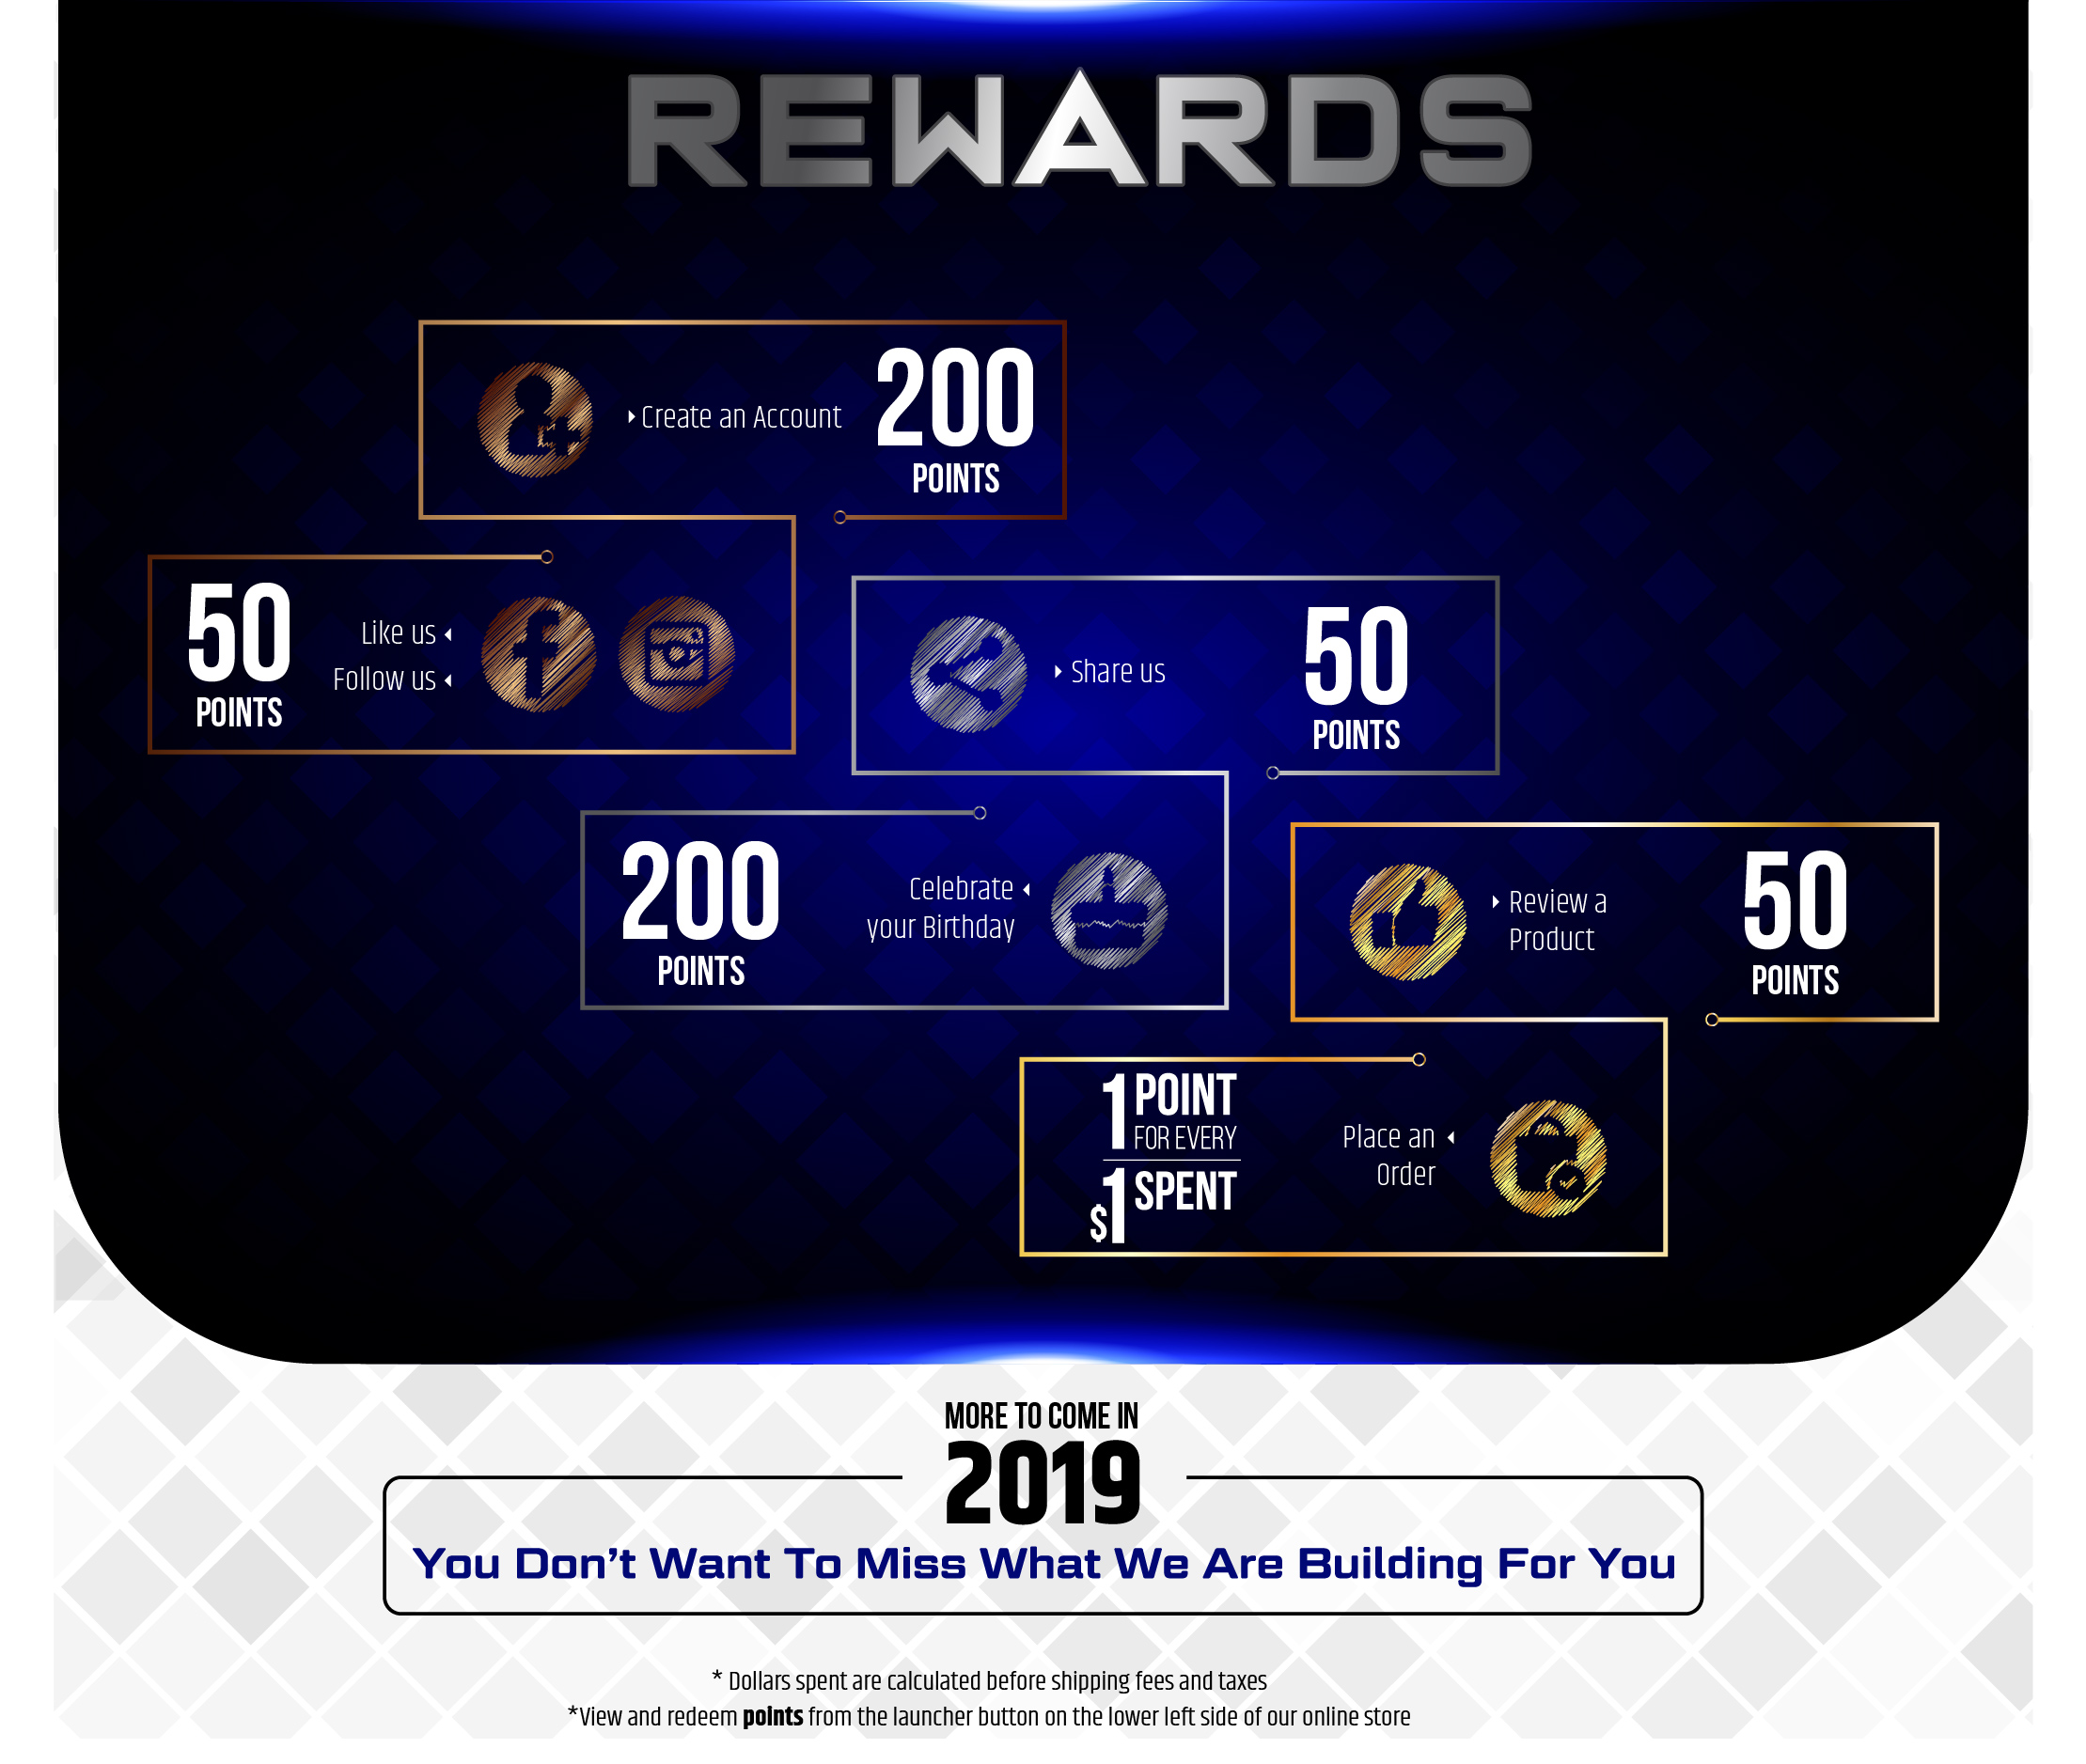 rewards-for-website2-05.jpg